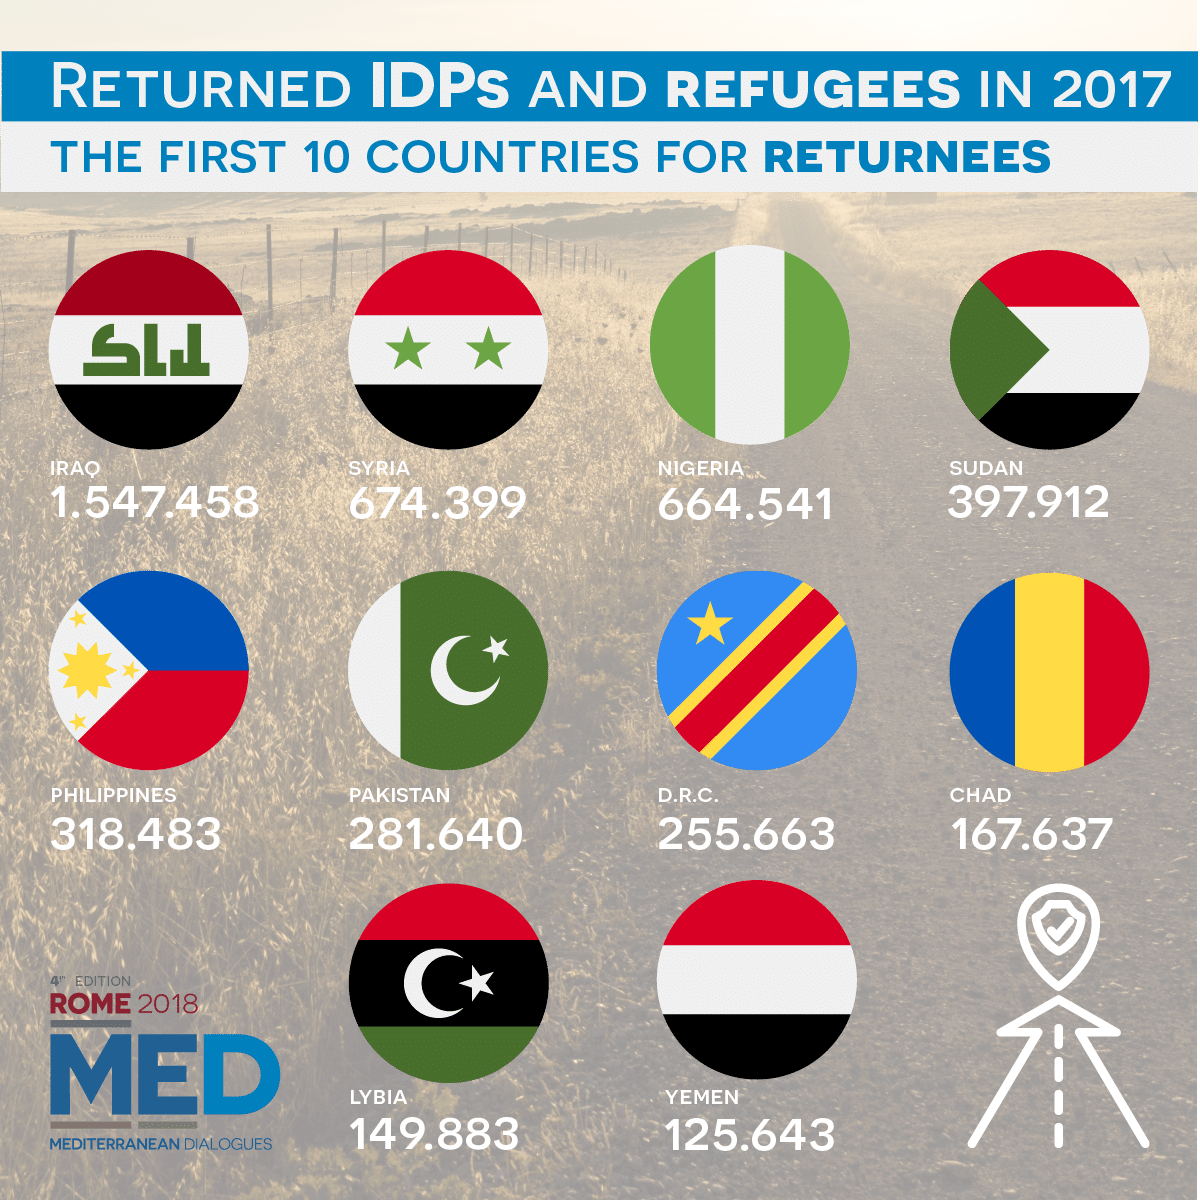 #Iraq #Syria and #Nigeria are the top 3 countries in the world for returned IDPs and refugees. Find out more about #migration, one of the 4 pillars of #Med2018 → https://t.co/HRSUdnbtFJ